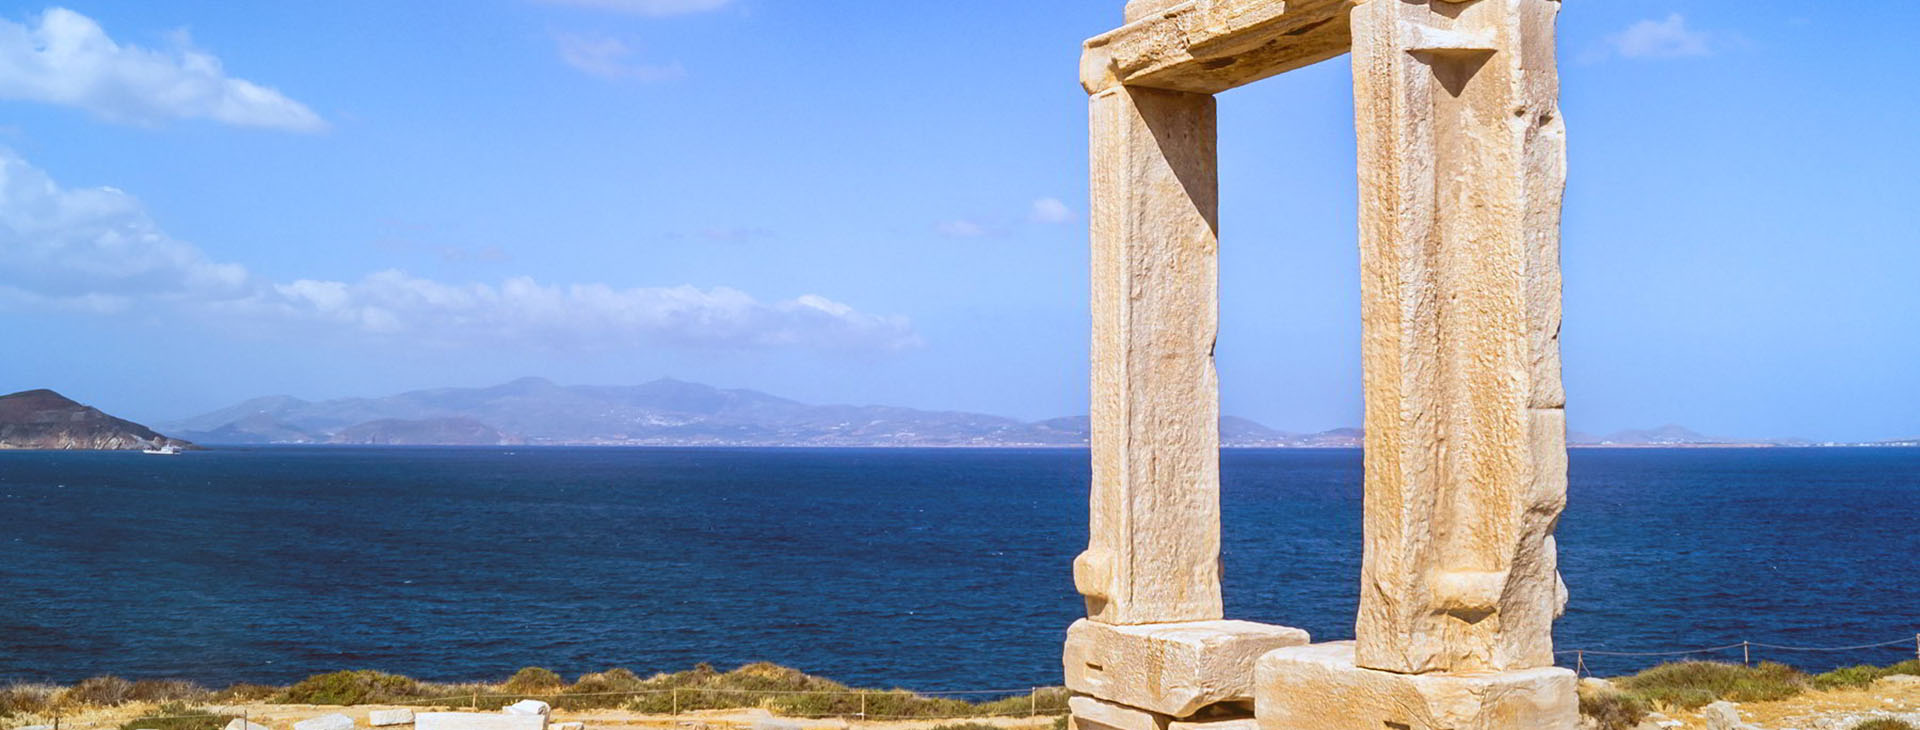 "Portara (""Gate"") at Naxos island"